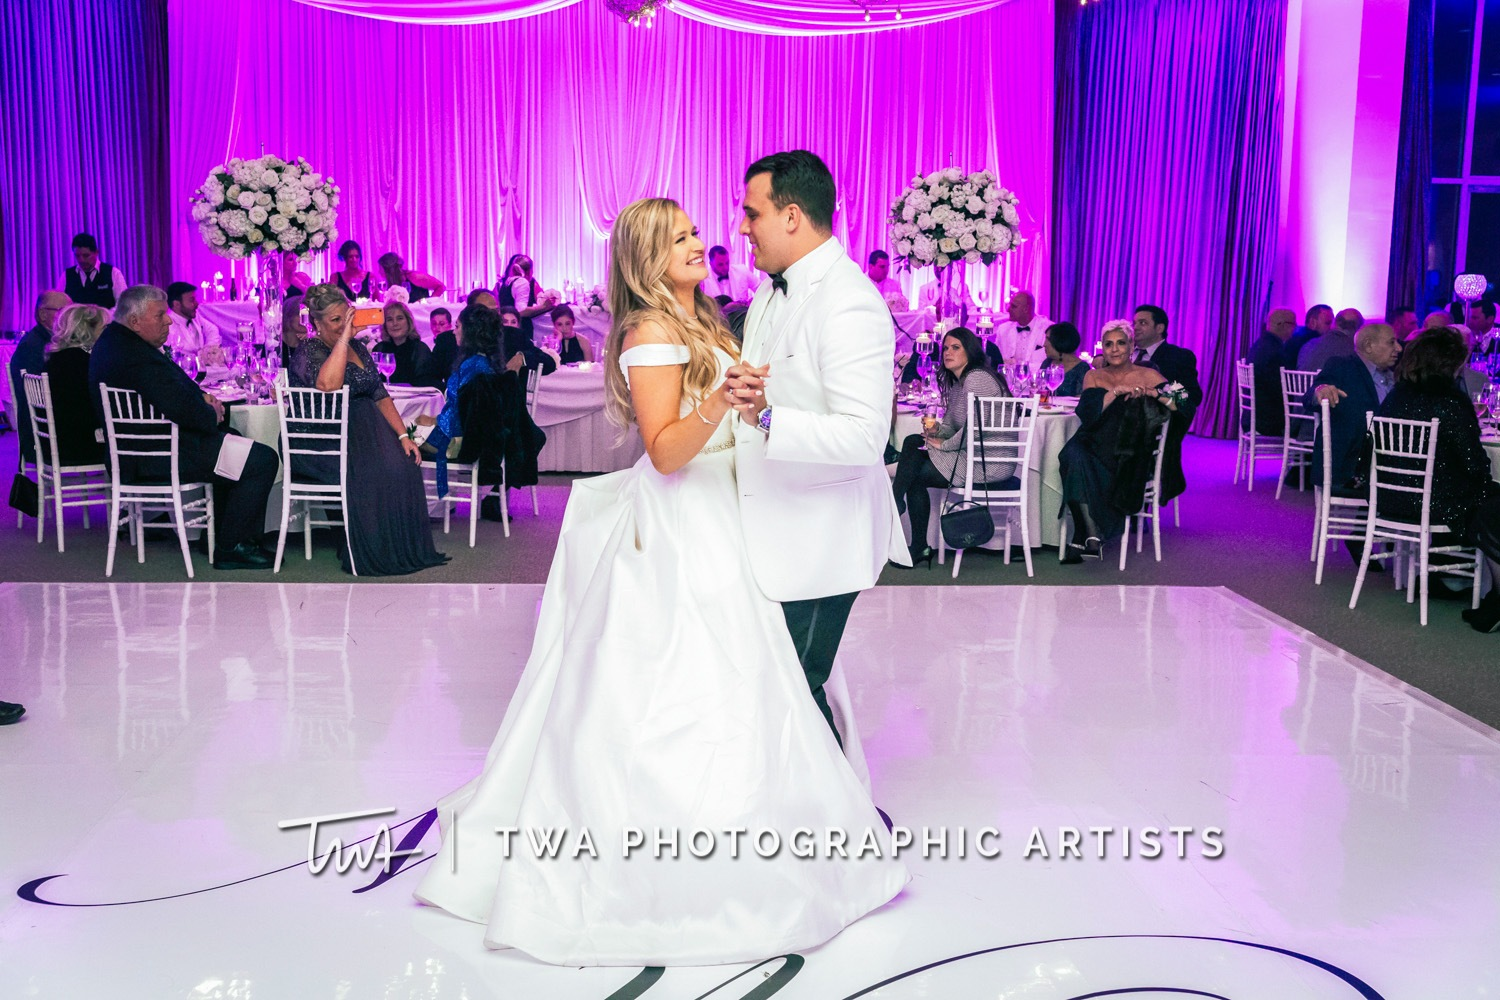 Chicago-Wedding-Photographer-TWA-Photographic-Artists-Belvedere-Banquets_Anast_Campanella_MiC_ME-1323